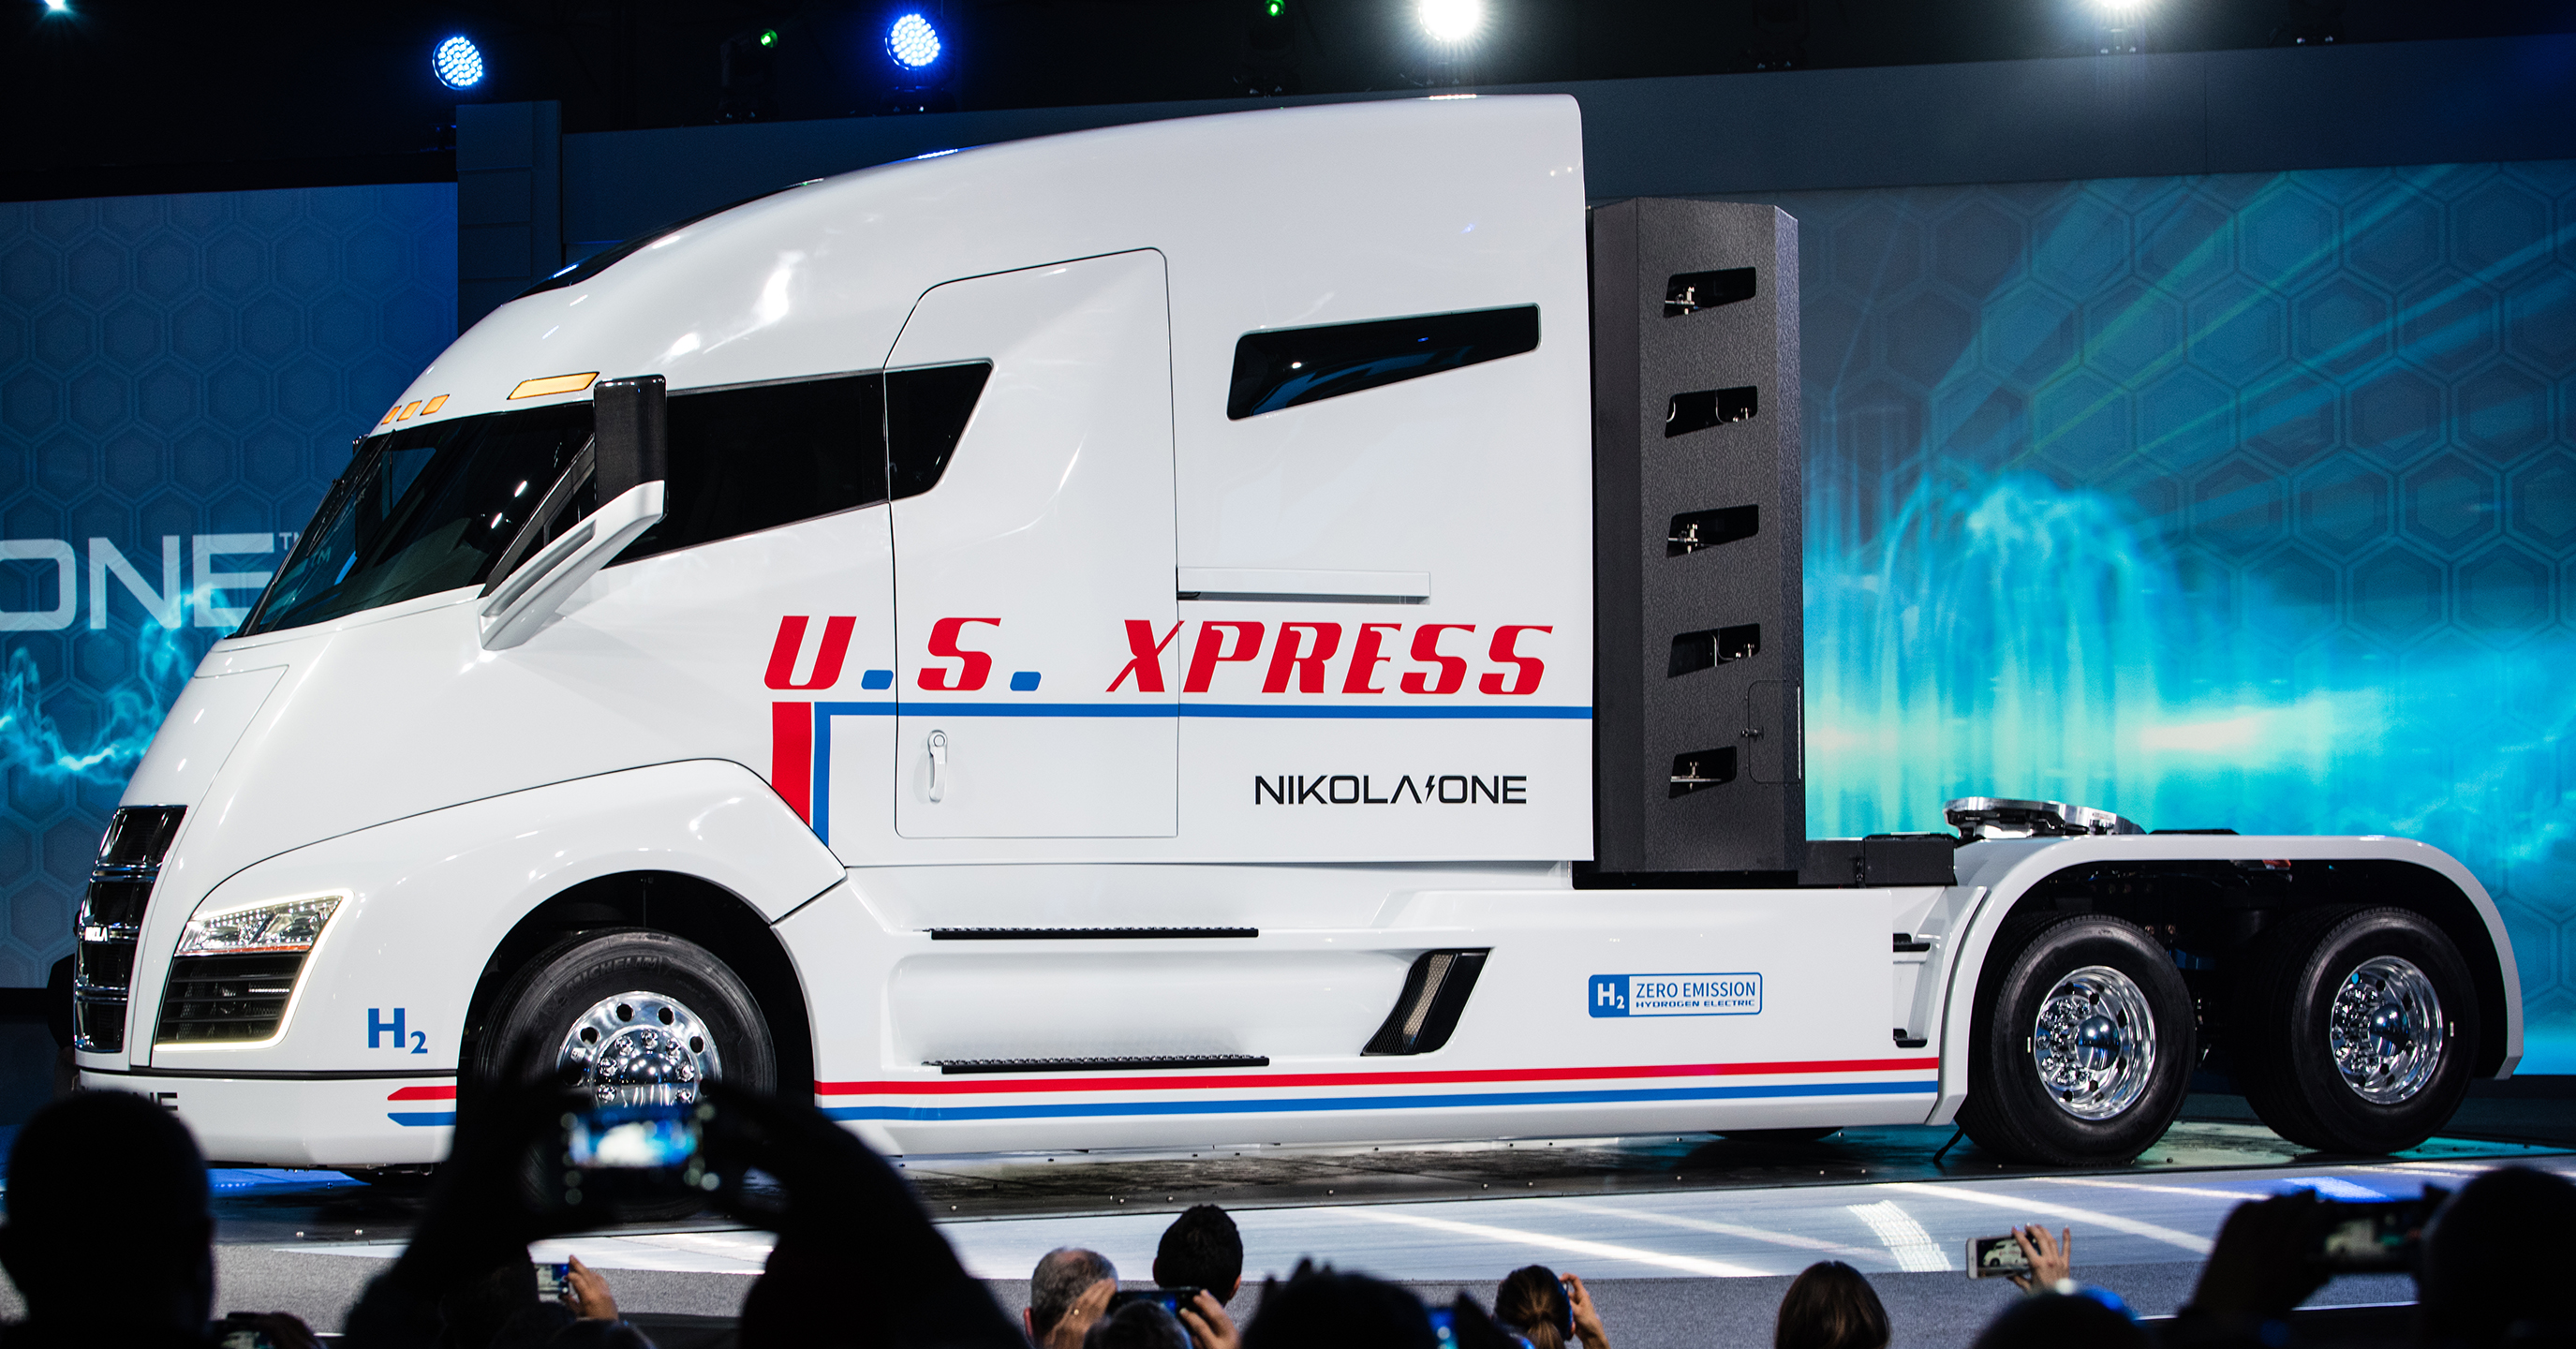 Nikola One hydrogen cell all electric semi-truck